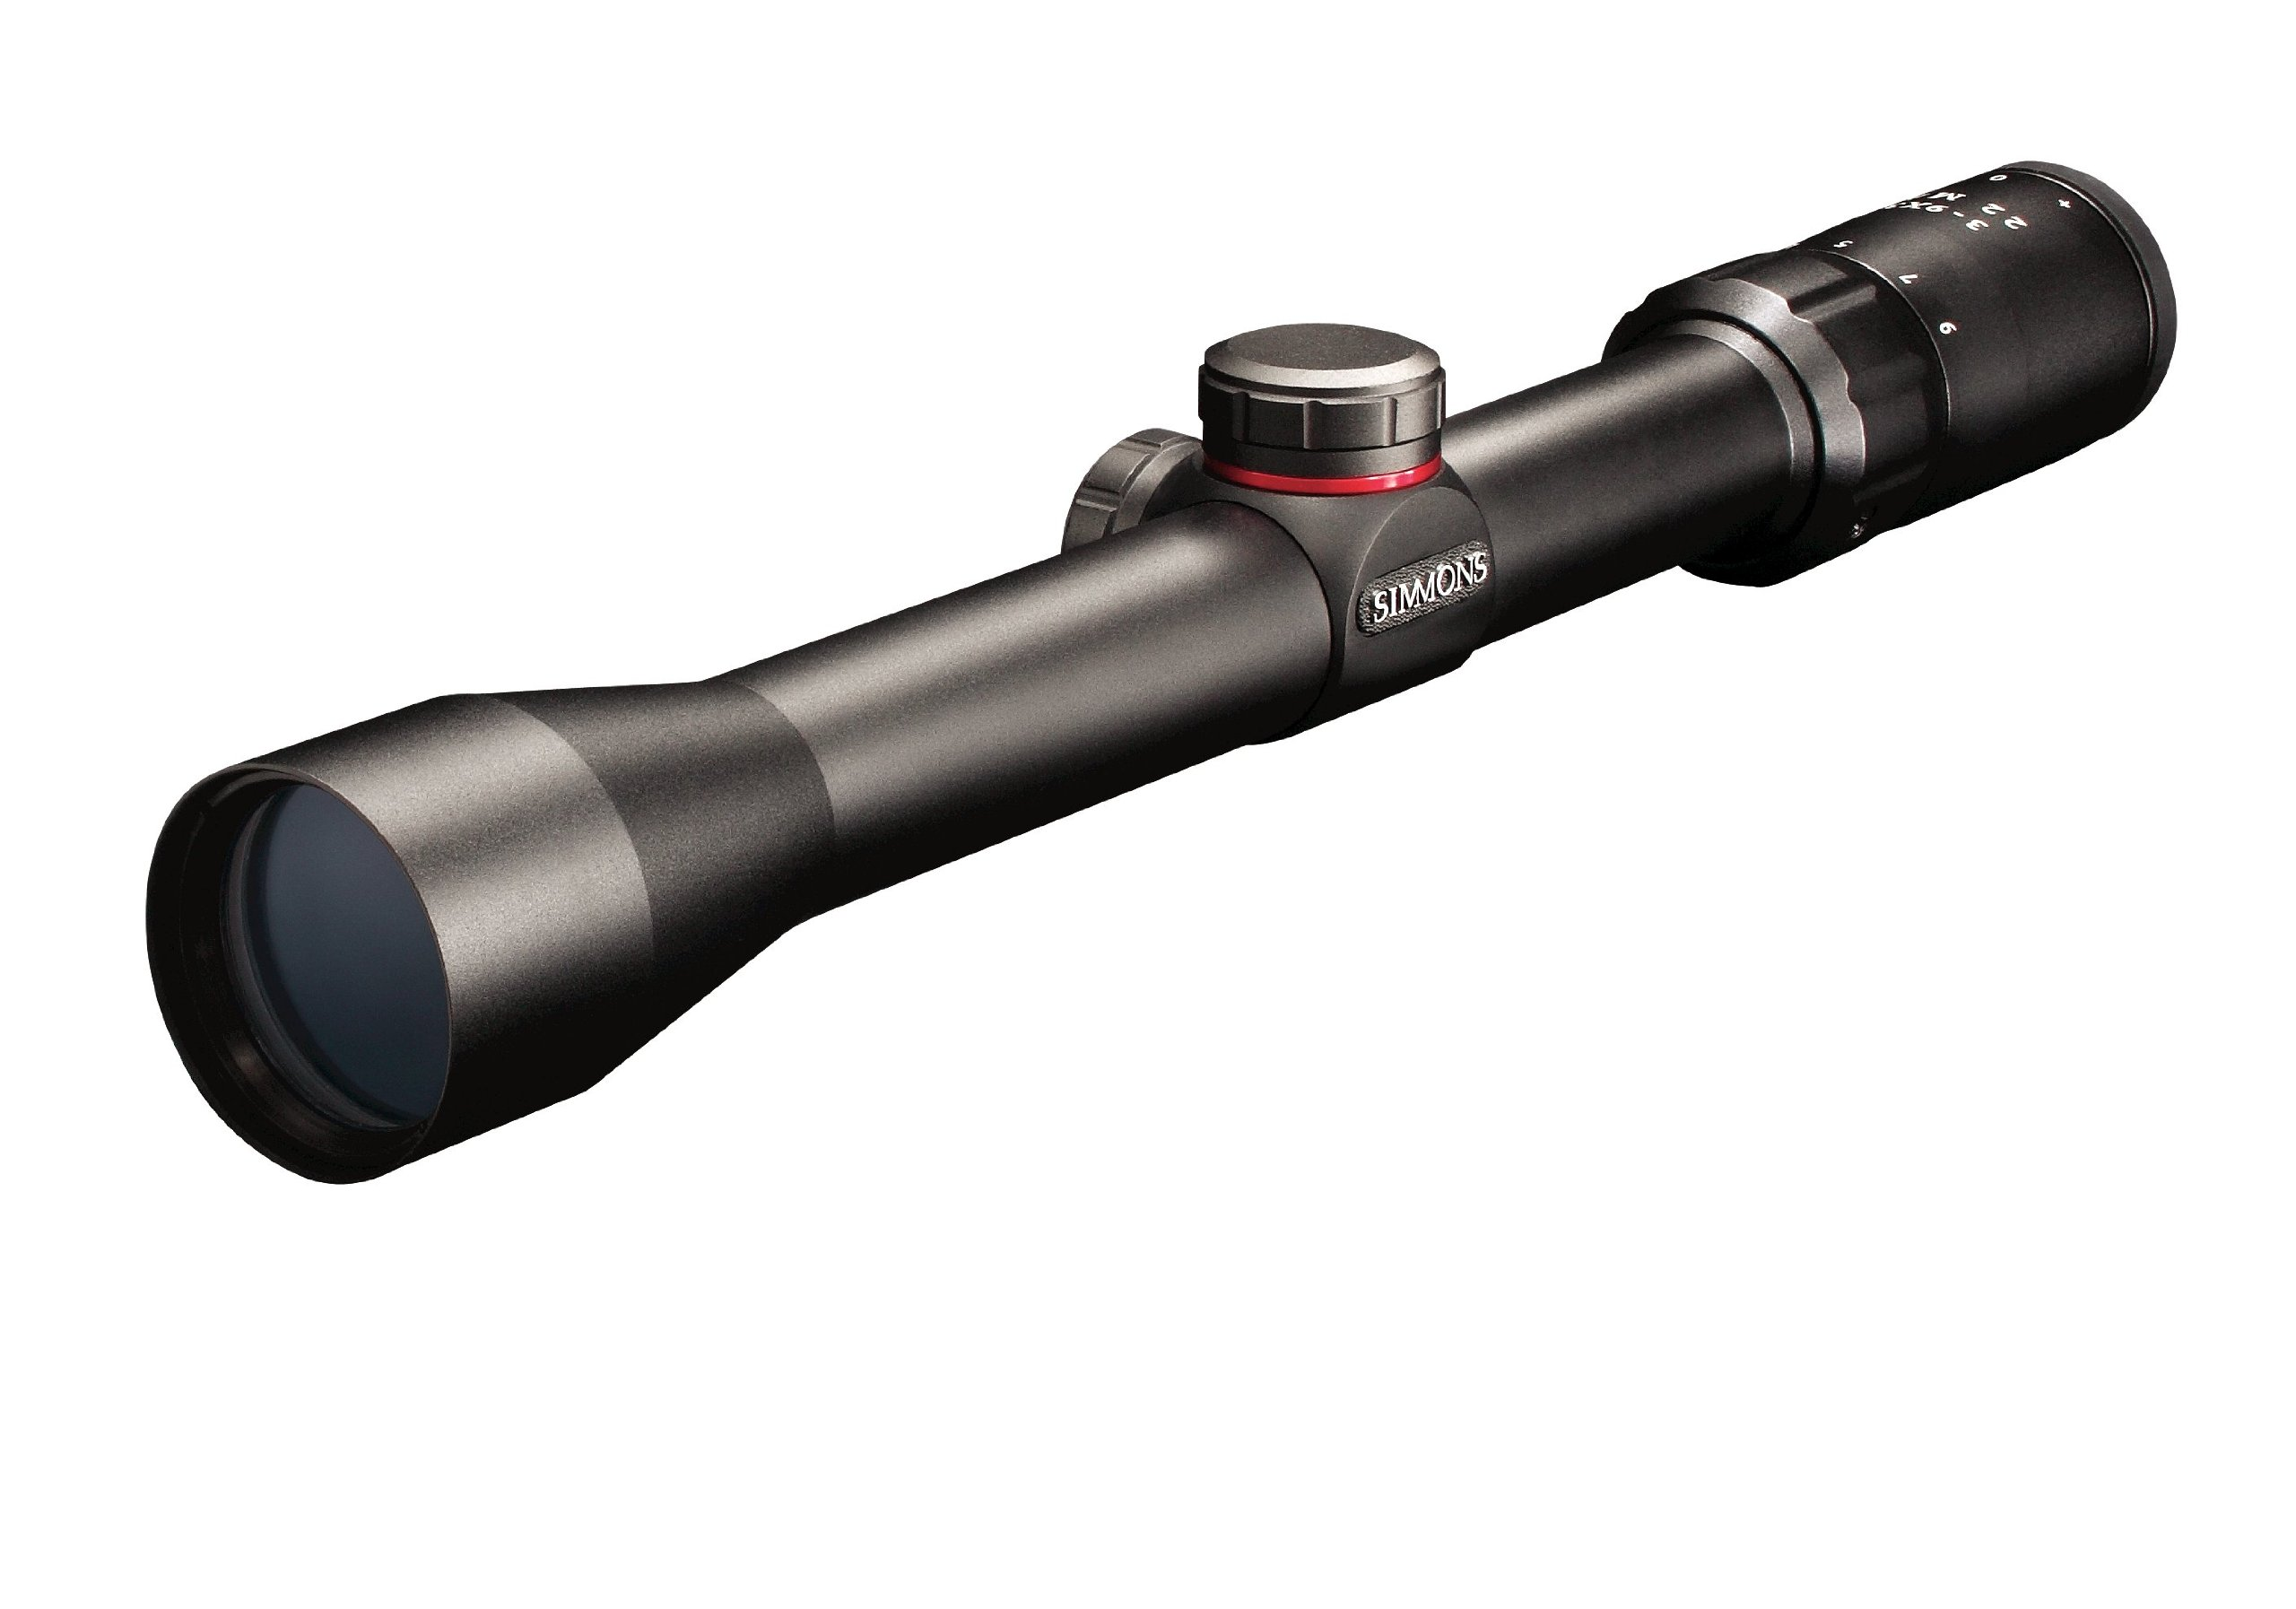 Simmons Truplex Riflescope Matte Rings